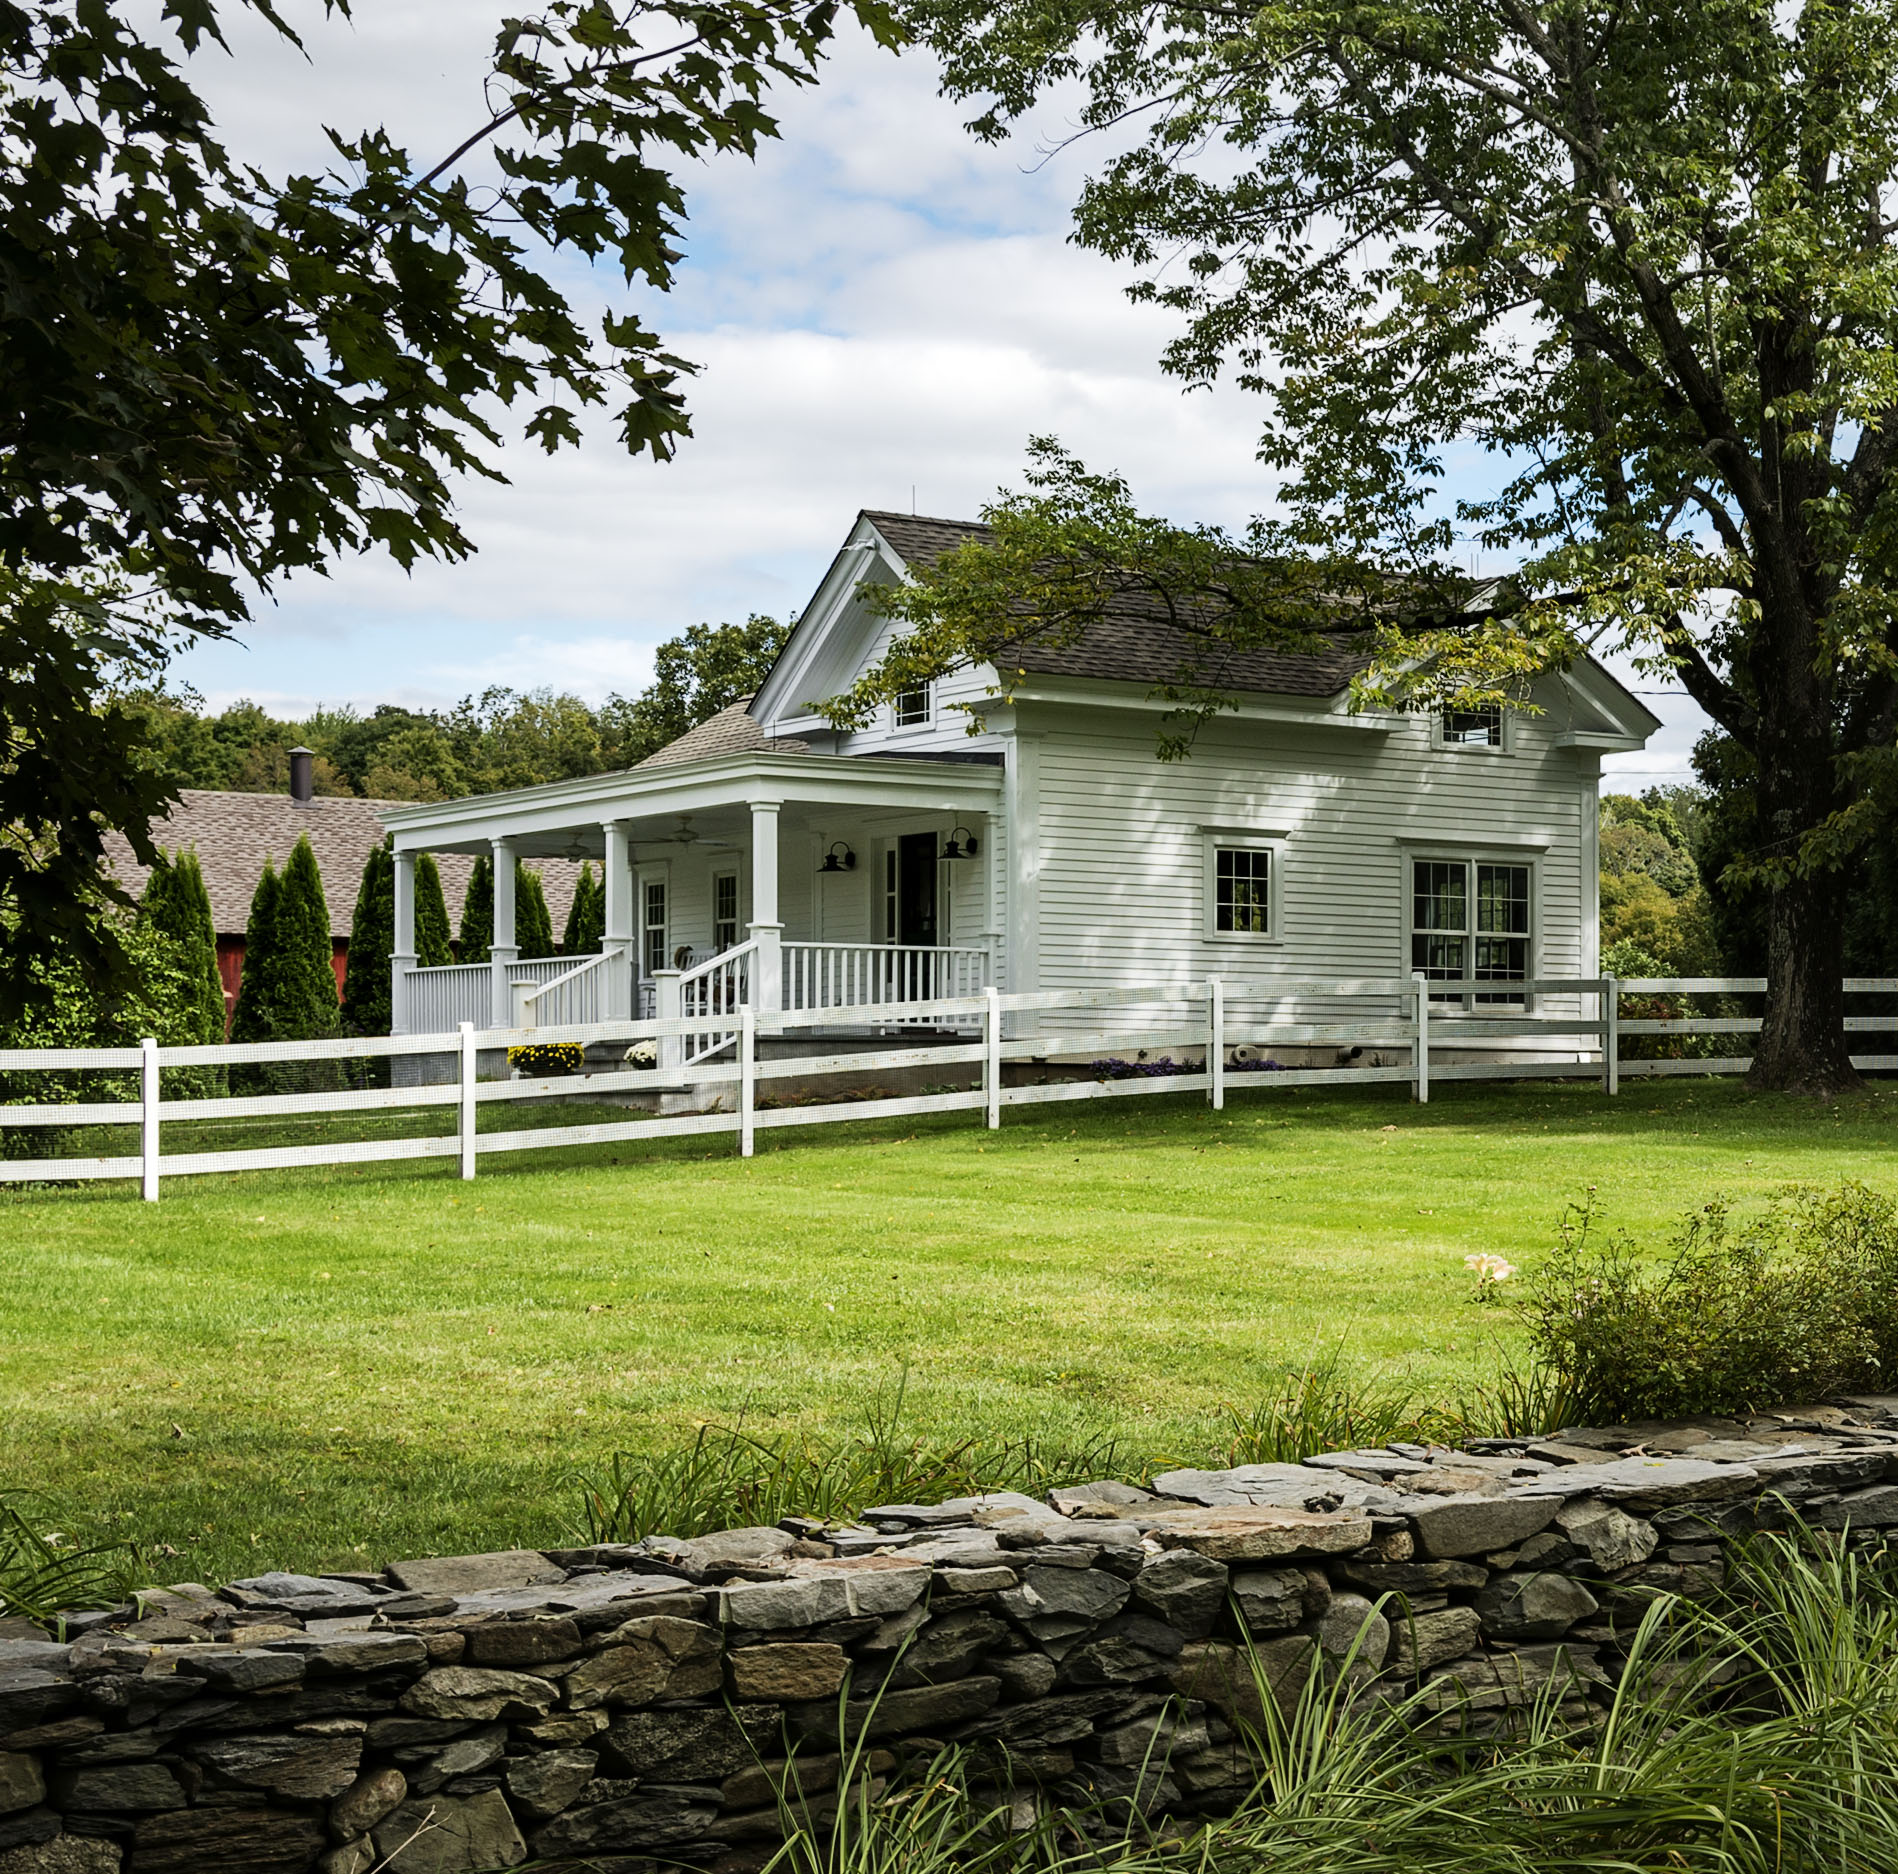 Small Home in the Country